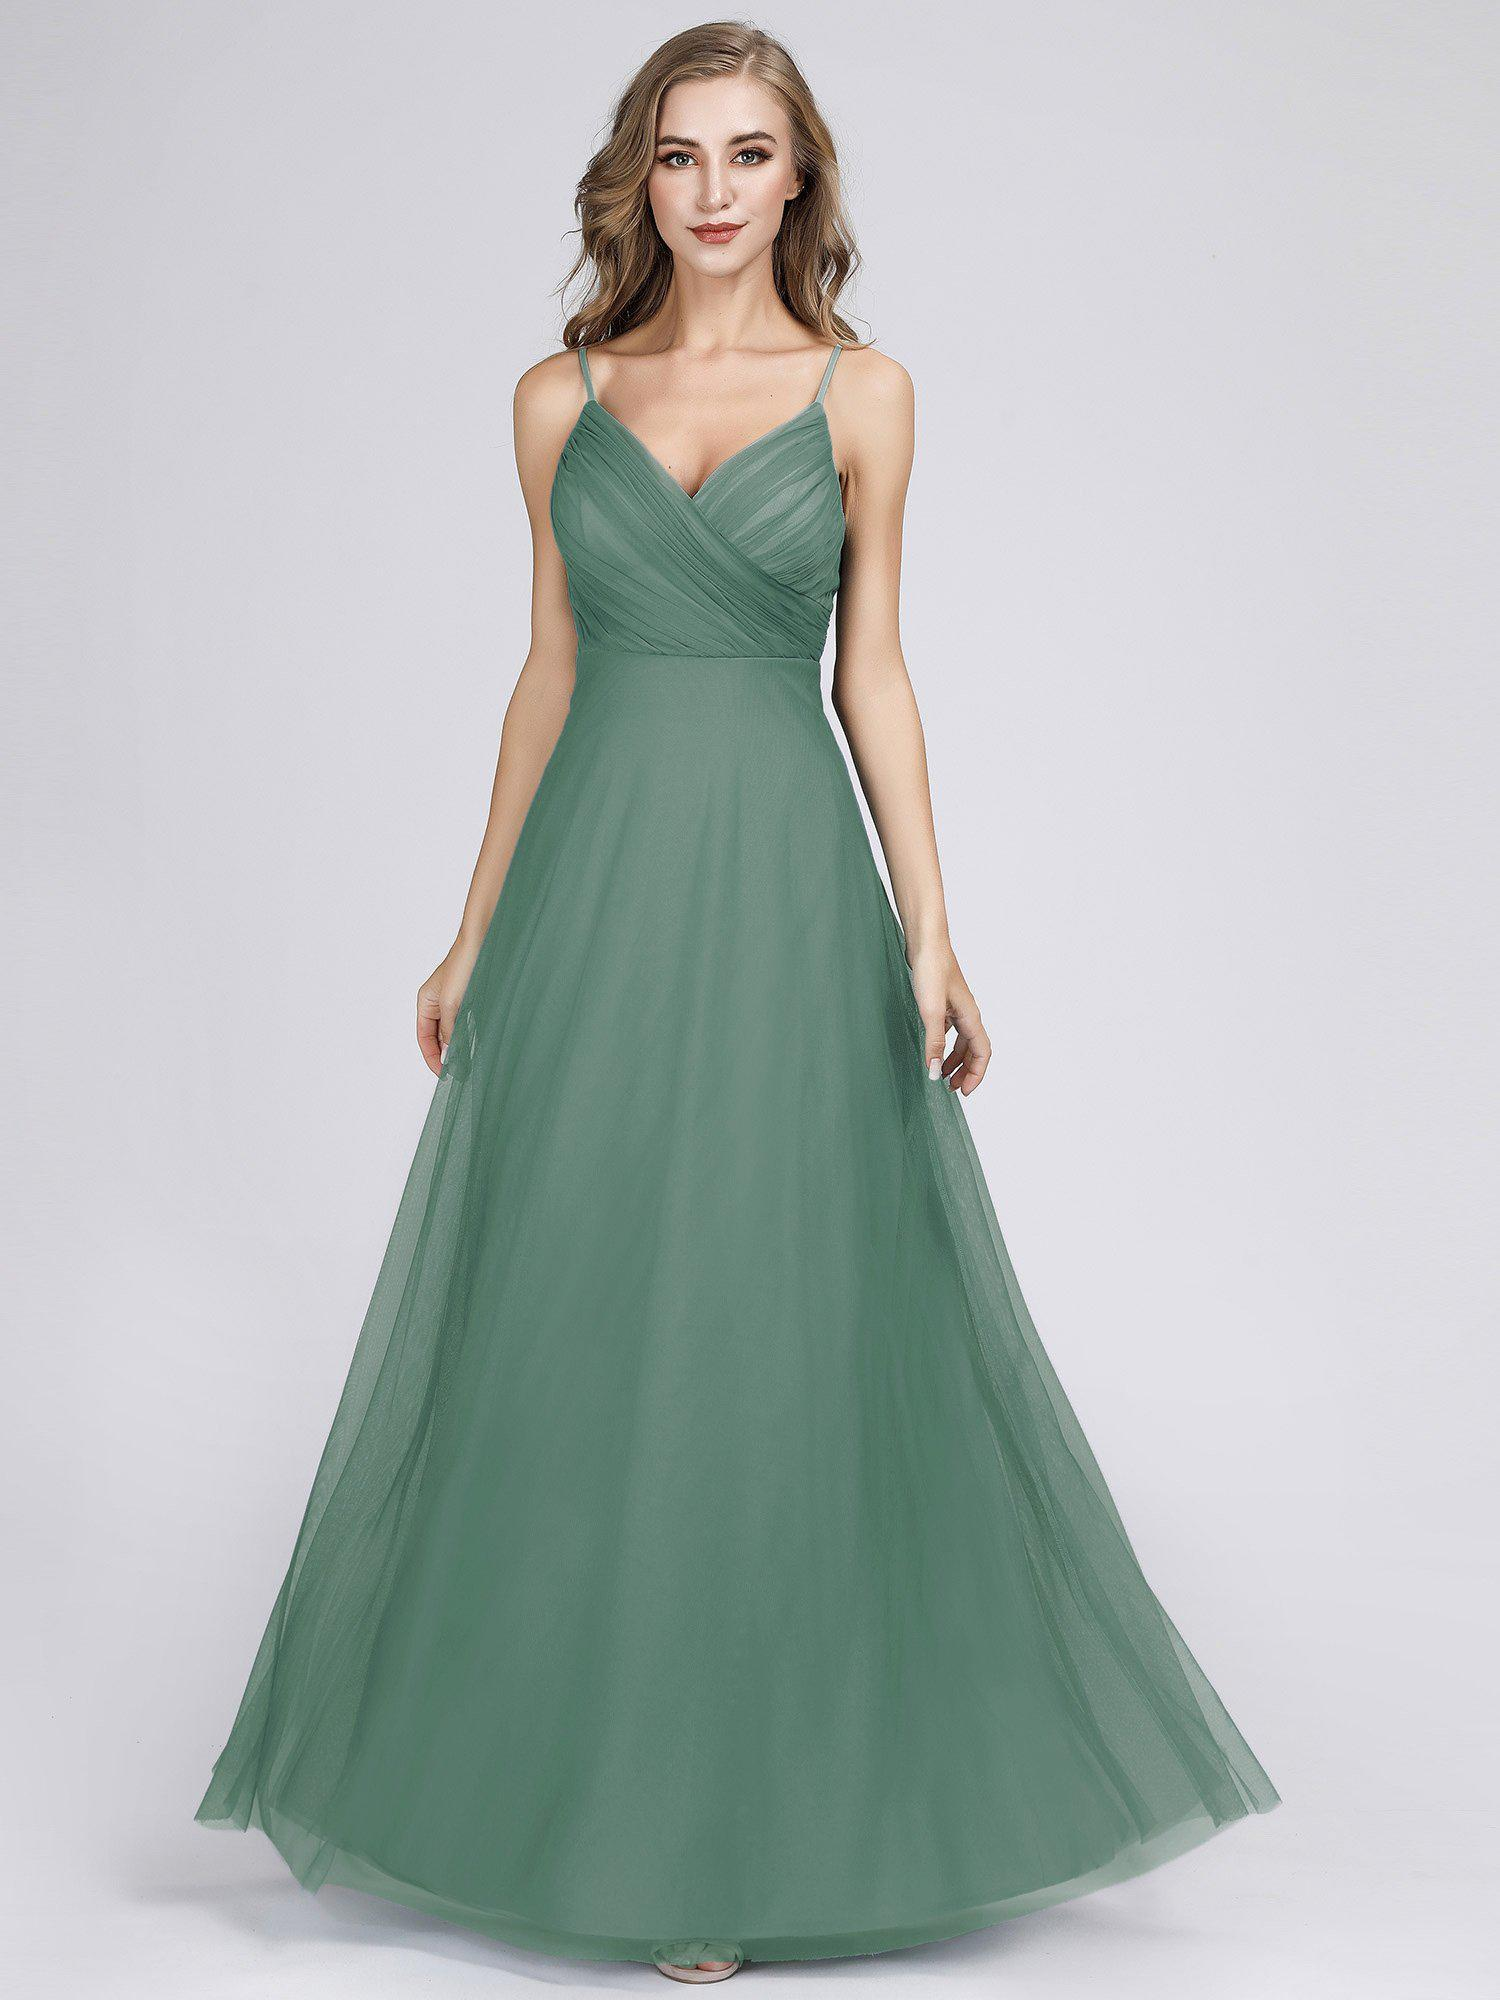 Mali spaghetti strap tulle bridesmaid dress in dusky green s8-Bay Bridesmaid